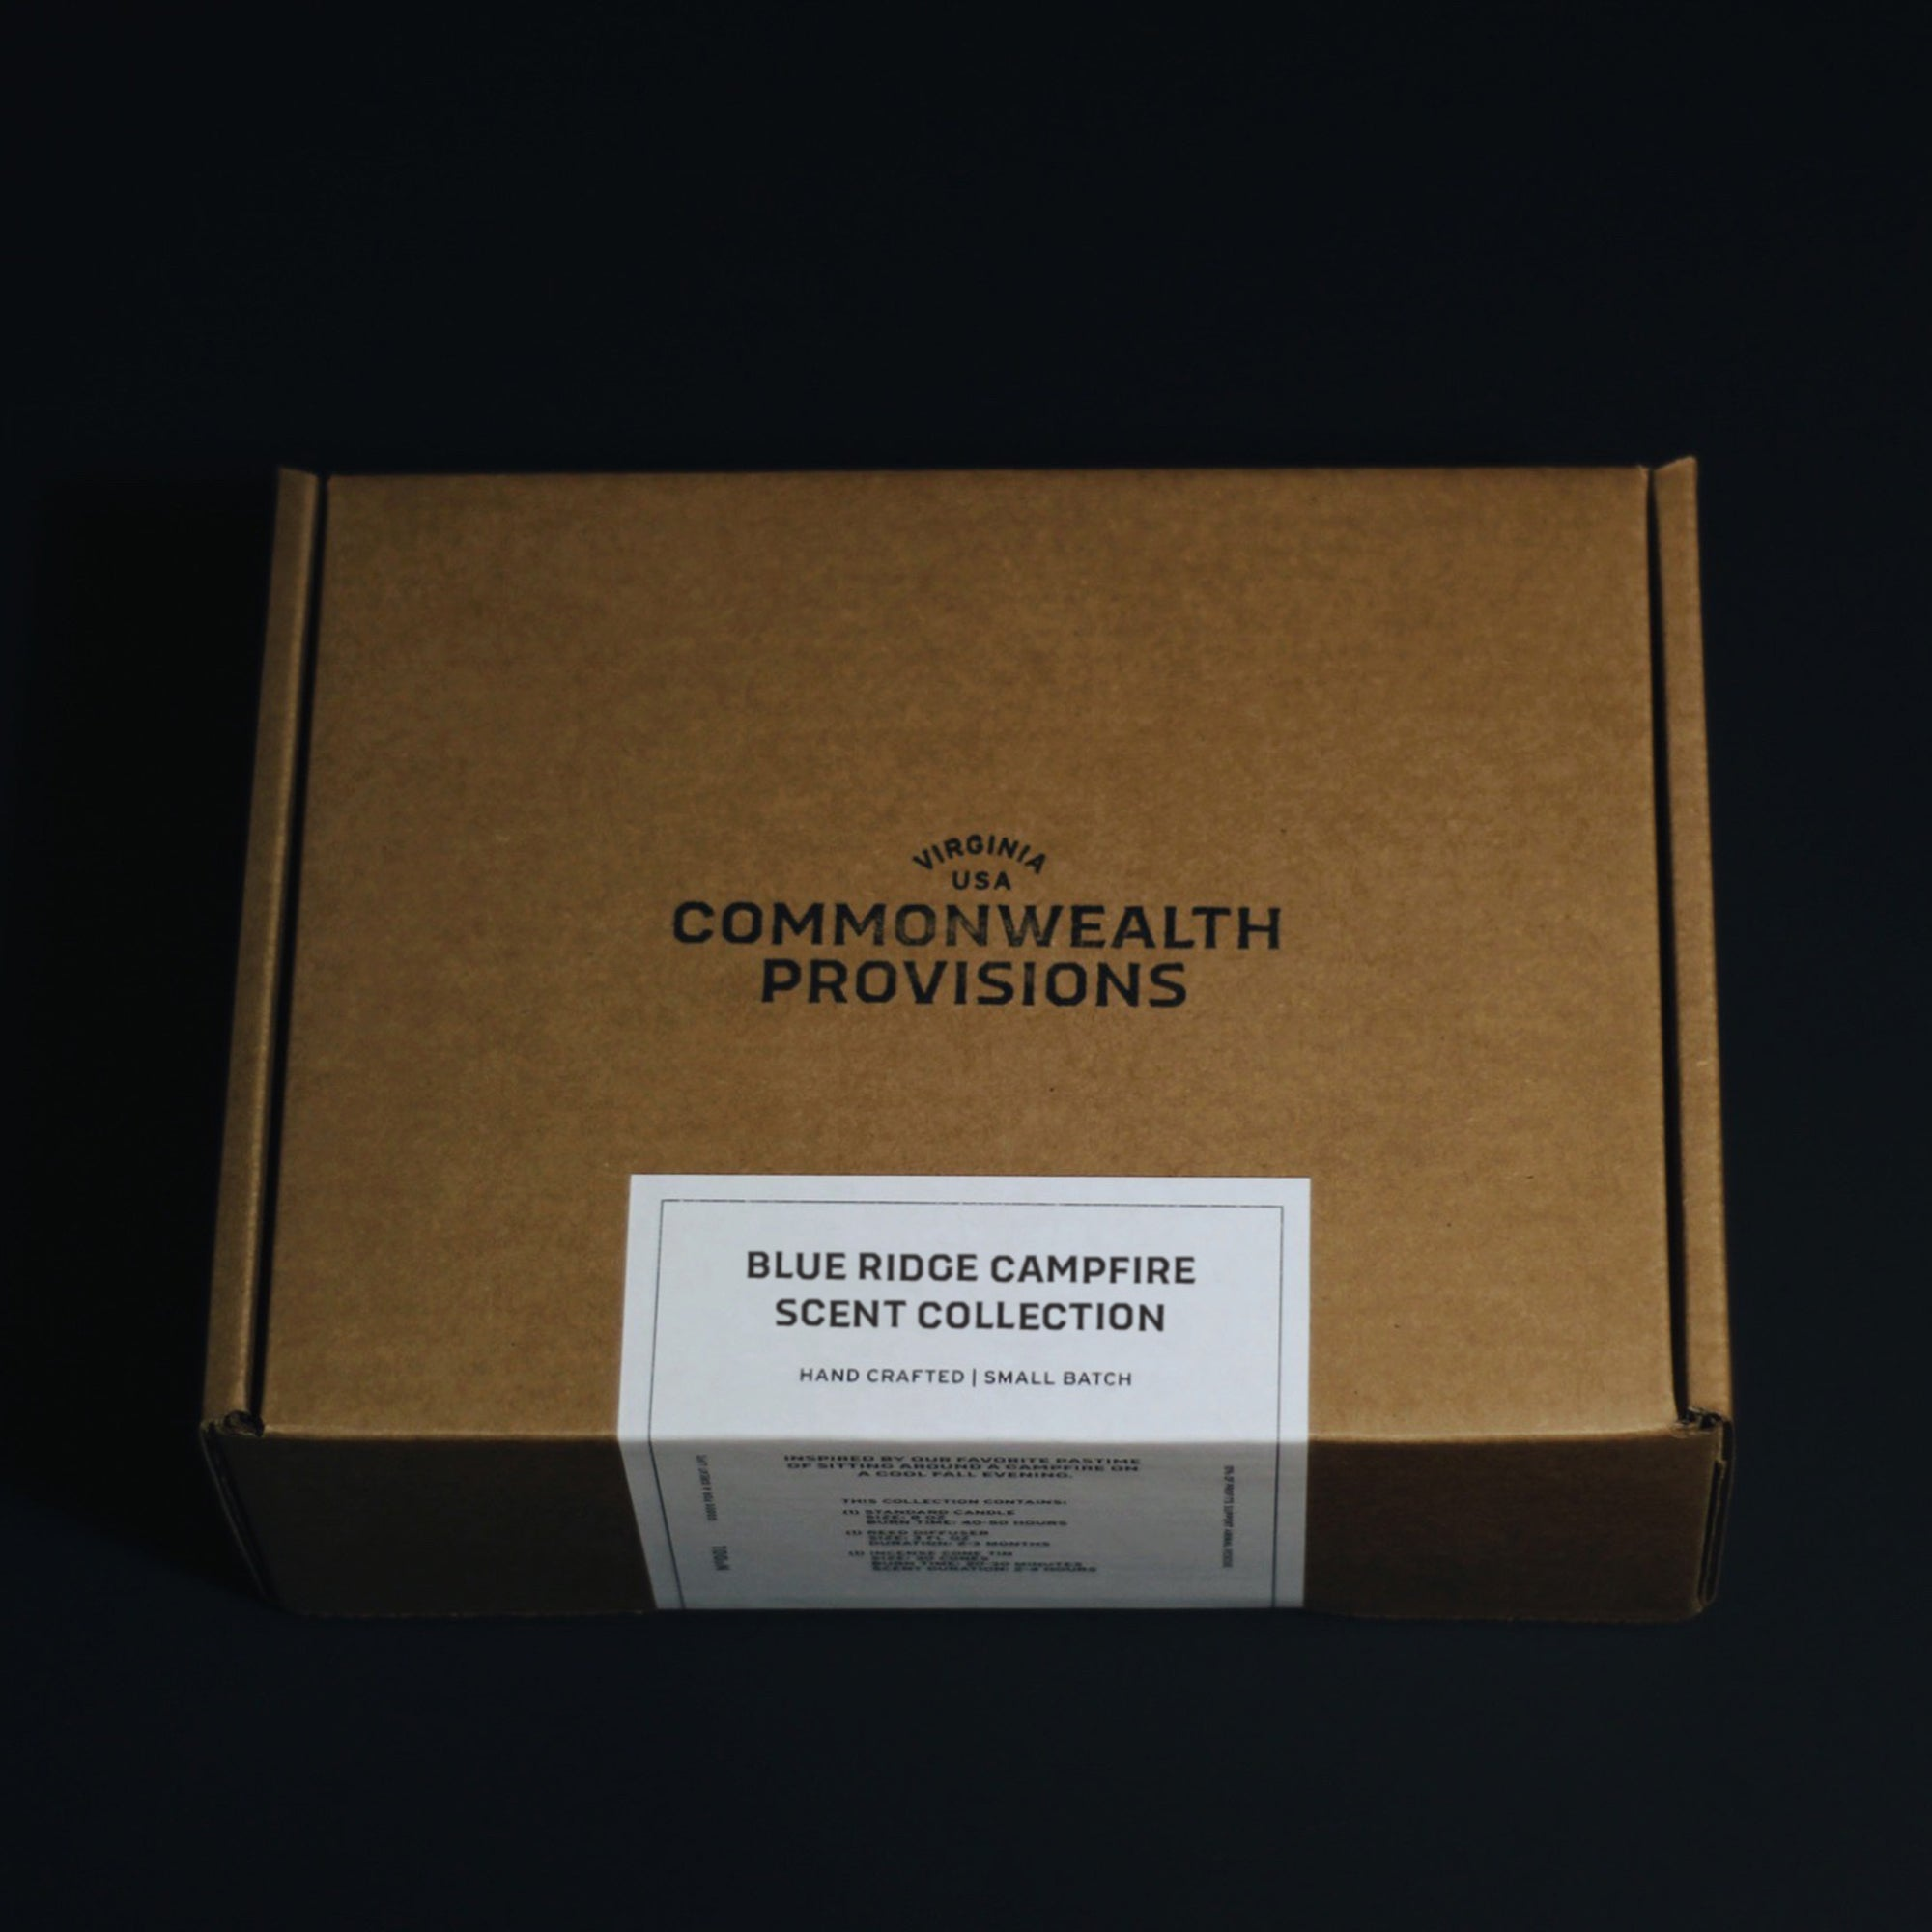 Commonwealth Provisions Blue Ridge Campfire Scent Collection Gift Set